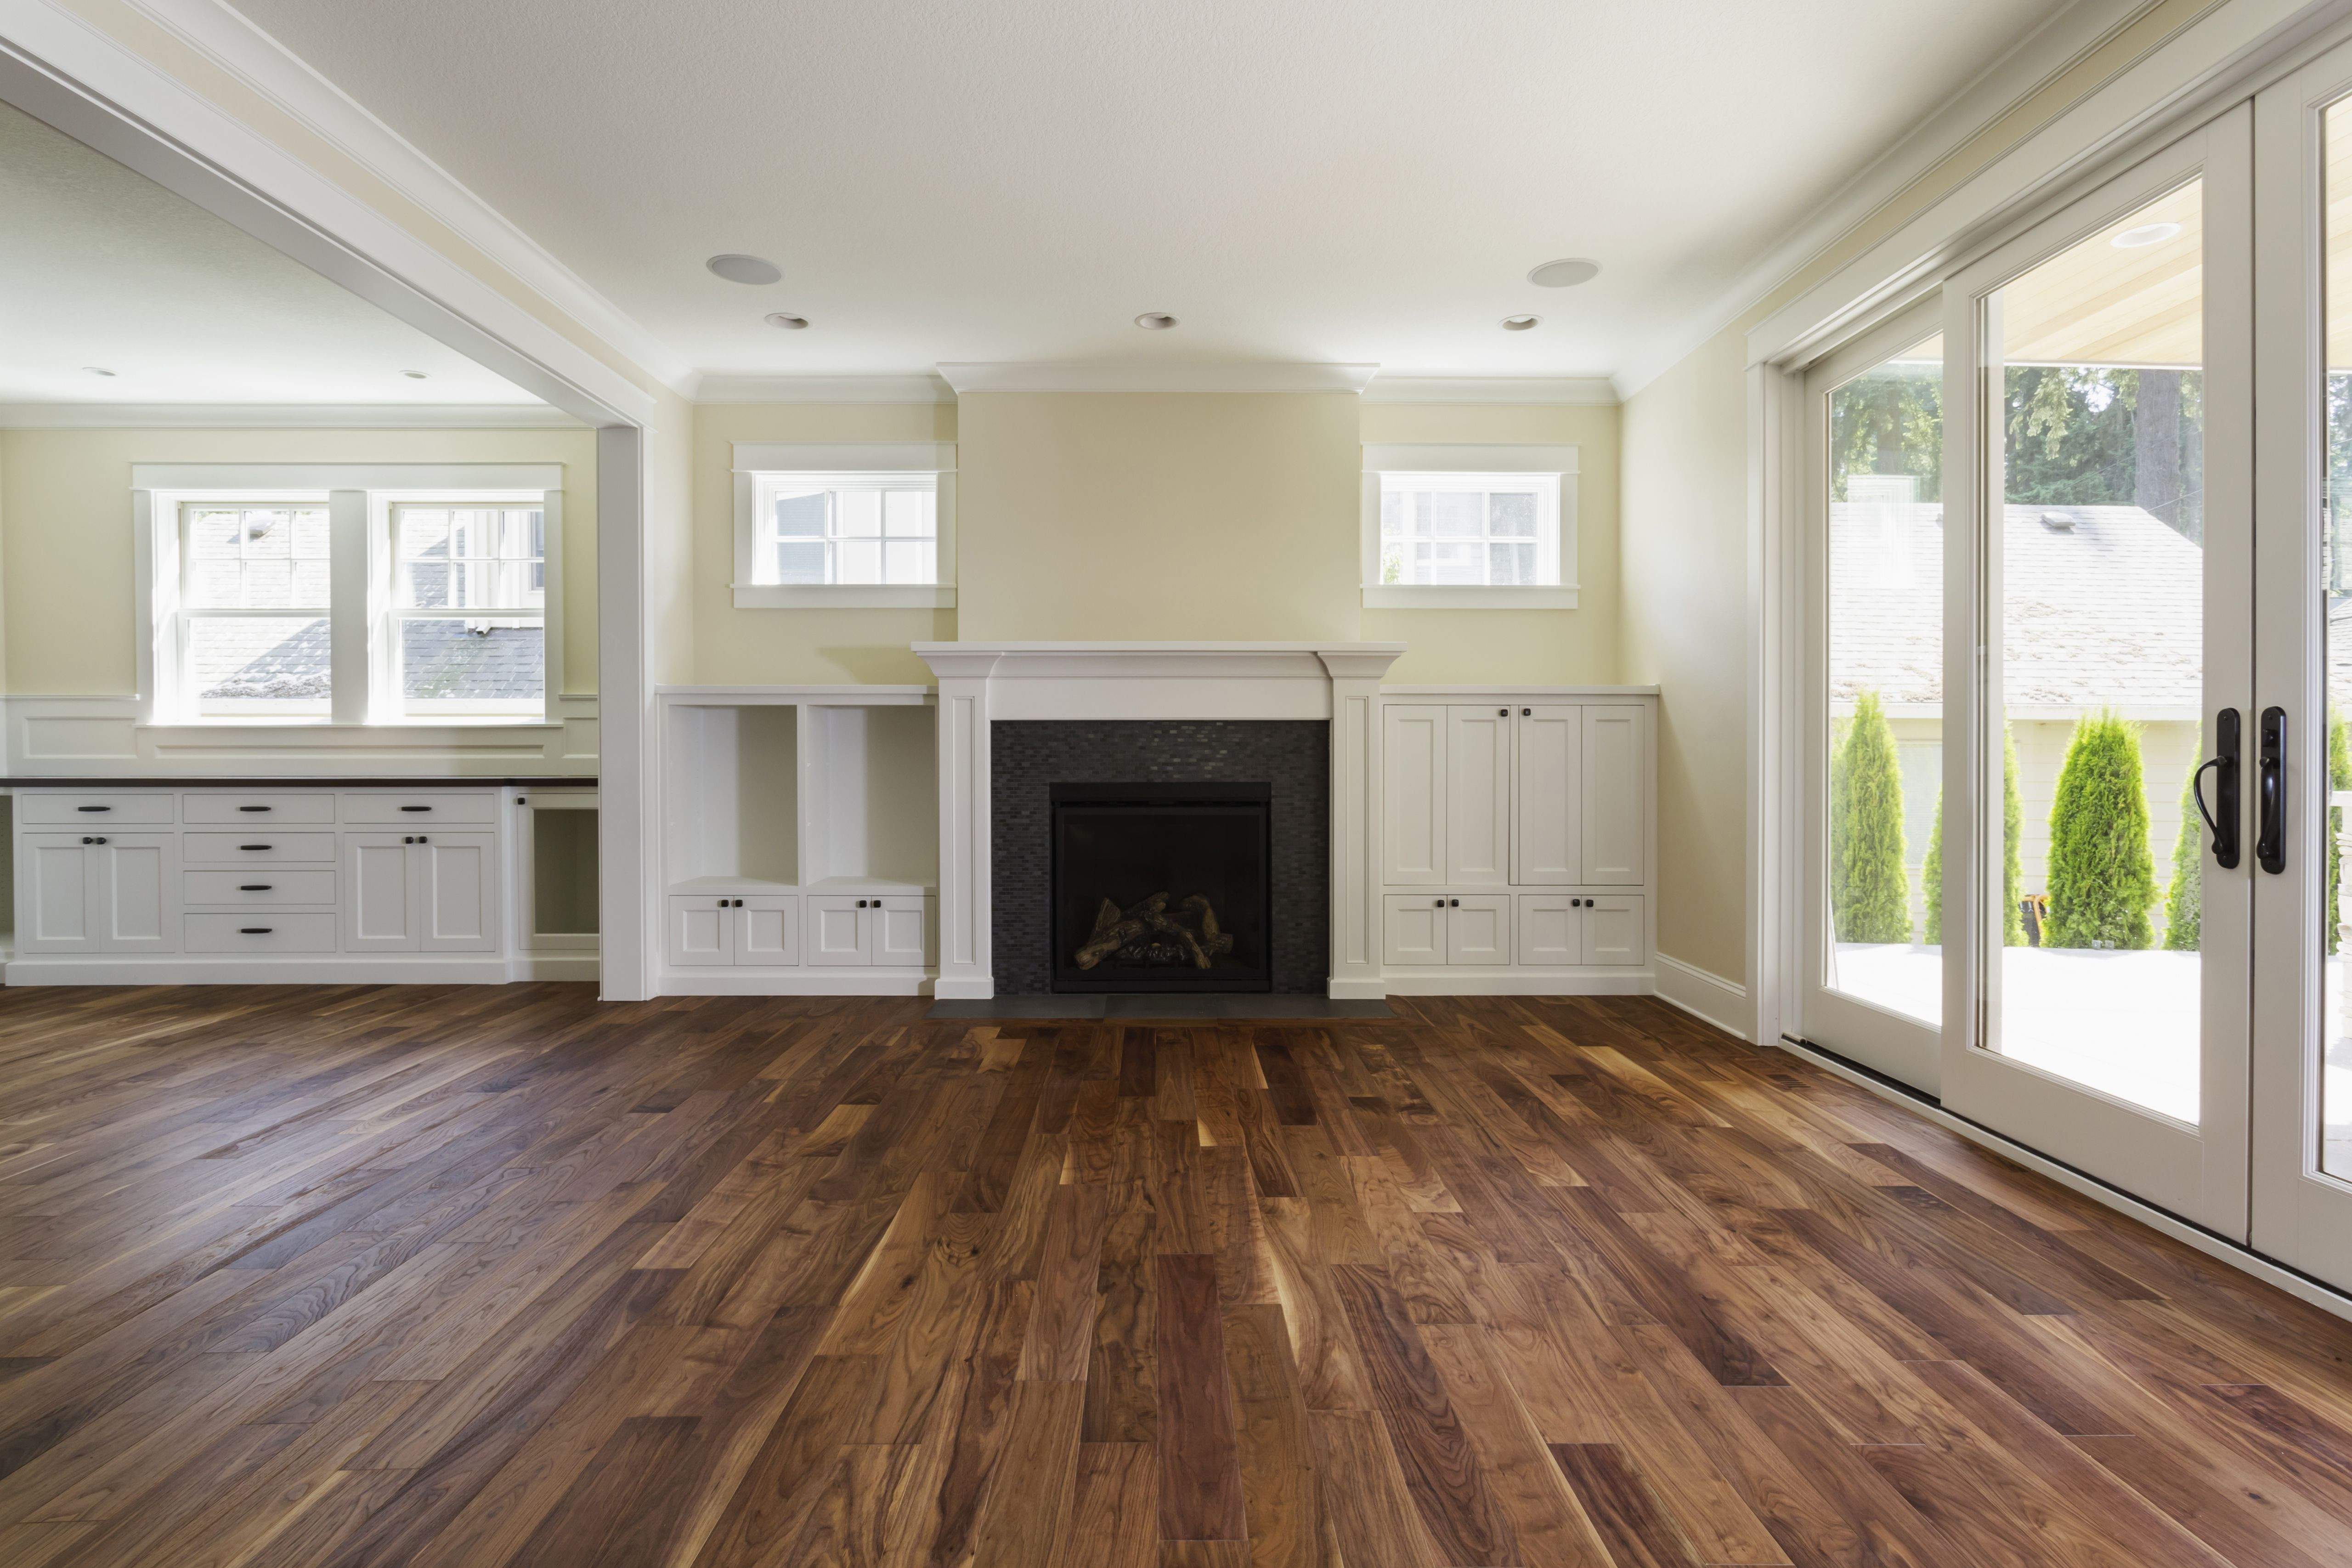 10 elegant prefinished white oak hardwood flooring - Pros and cons of hardwood flooring ...